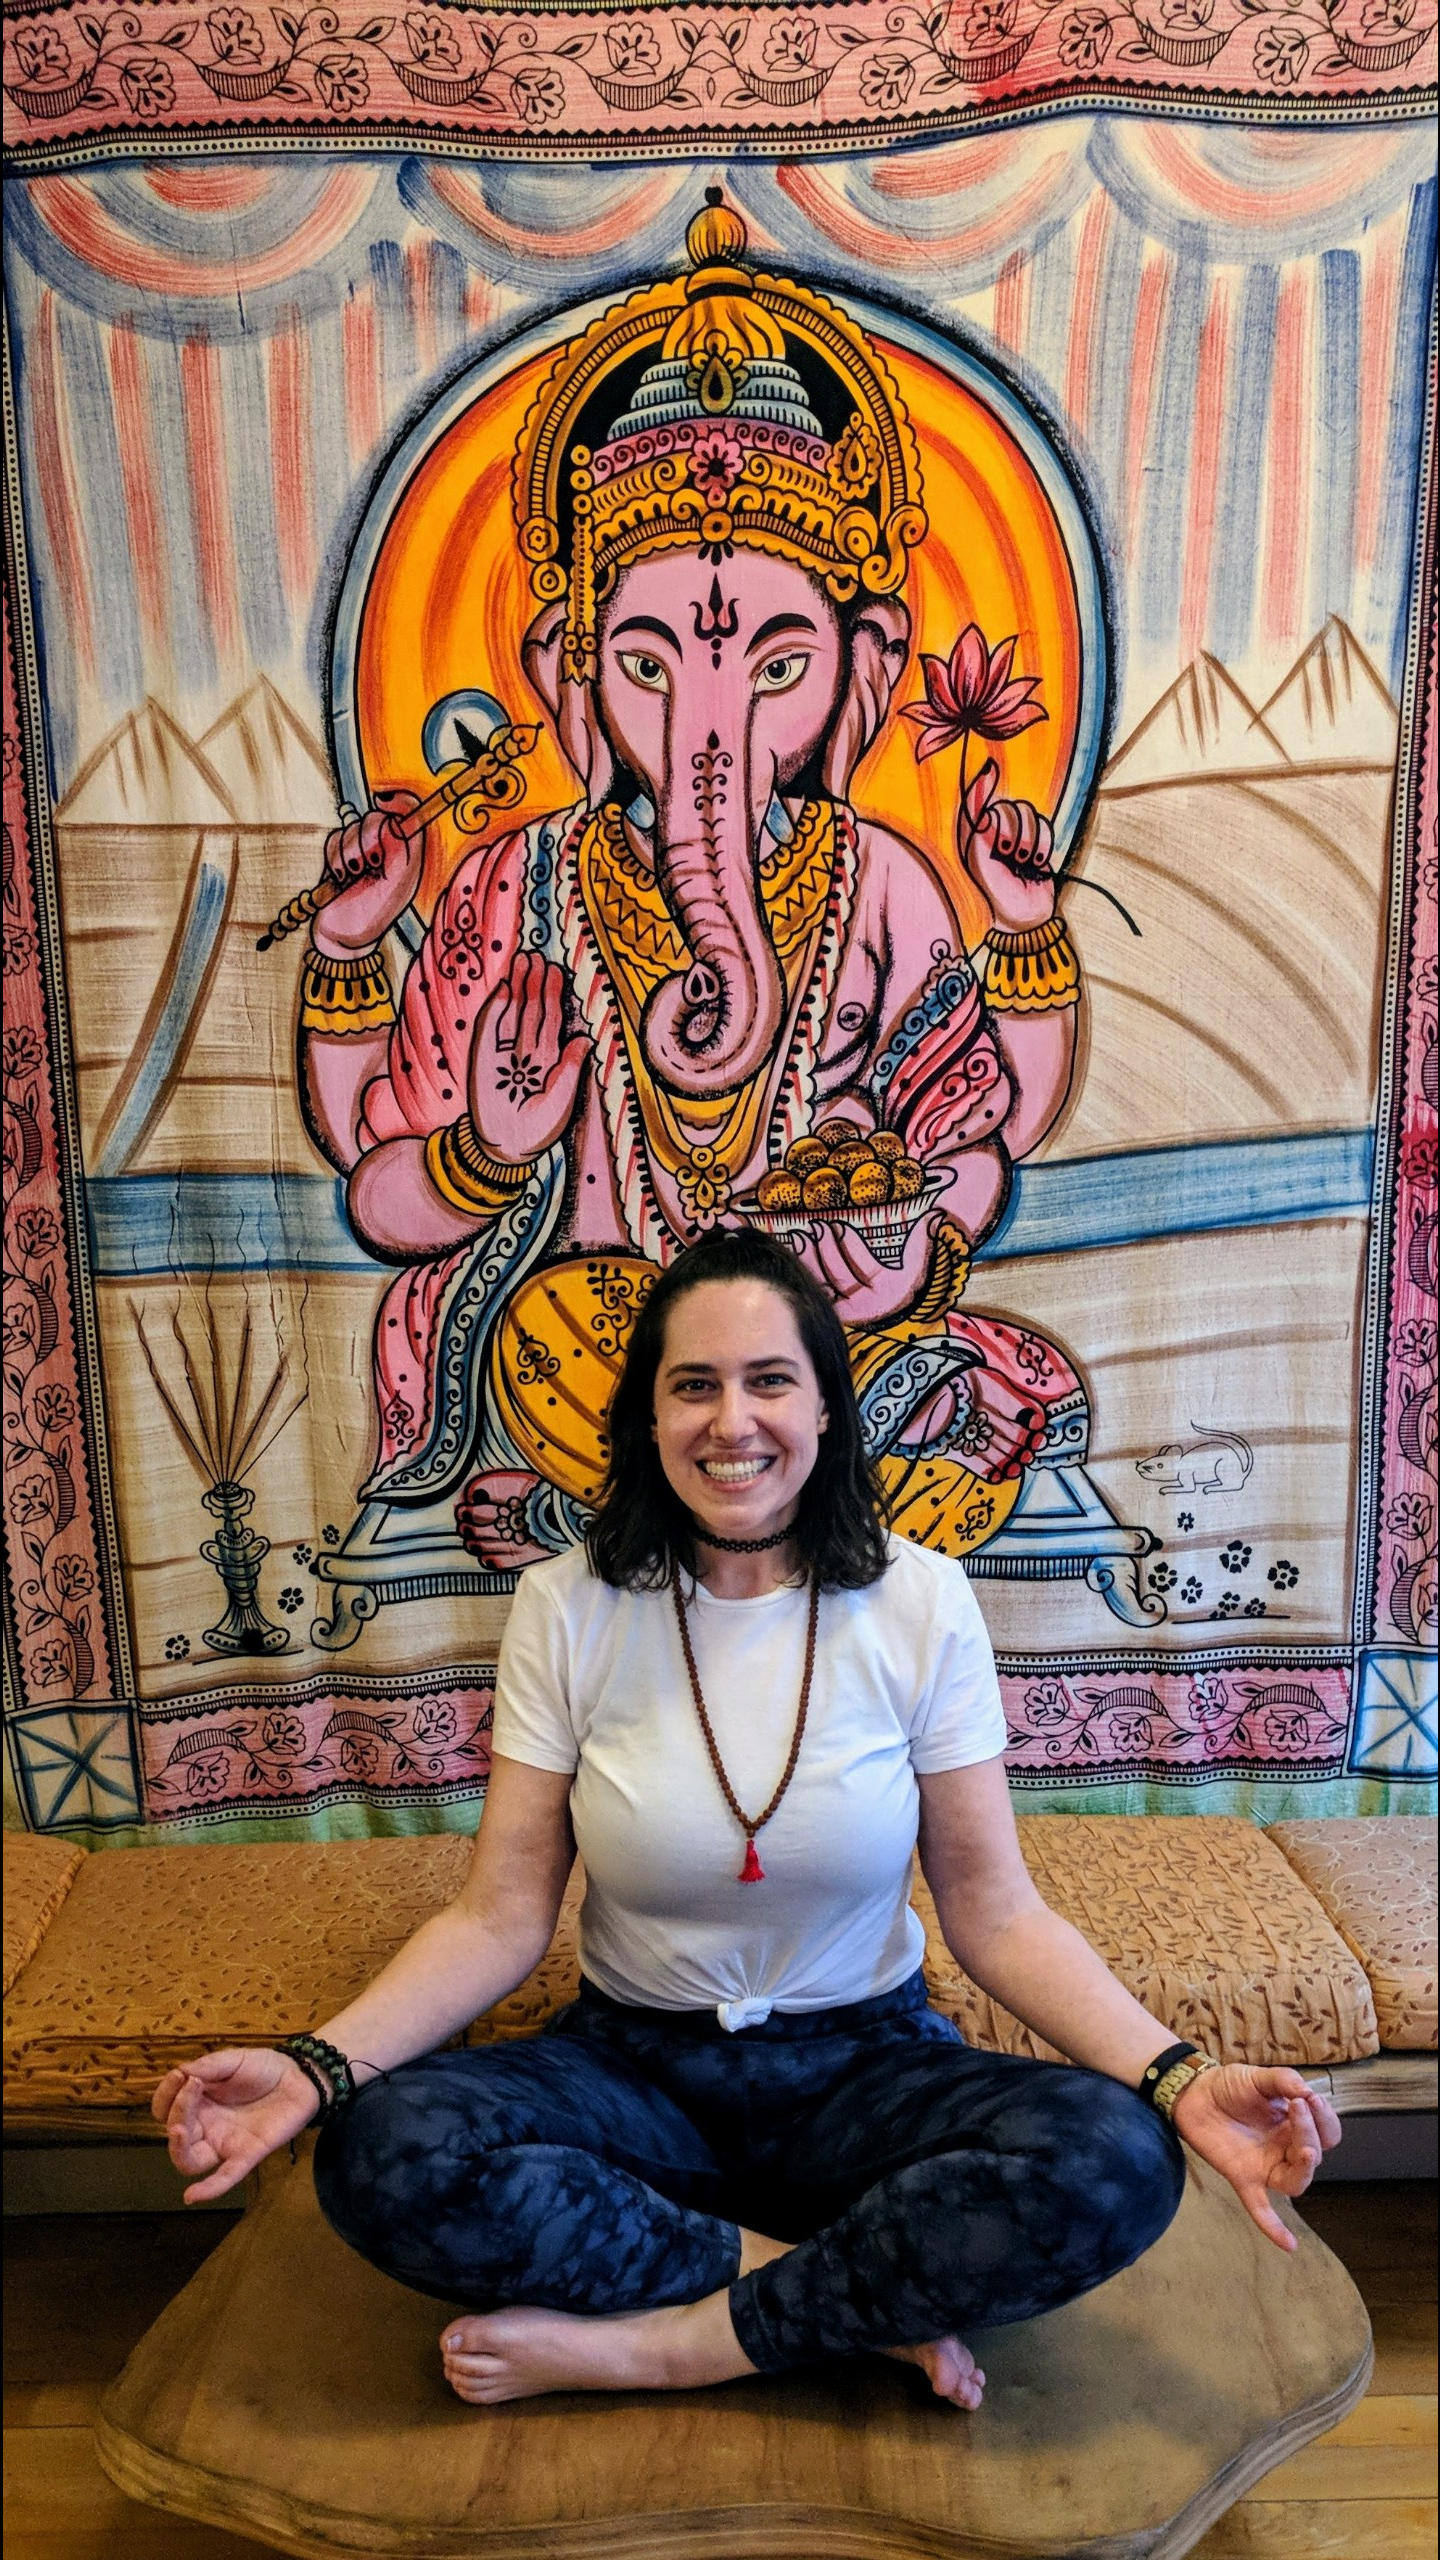 Jaime Ormont in the easy yoga pose wearing mala beads and a white t-shirt about to meditate in front of a Ganesh tapestry.